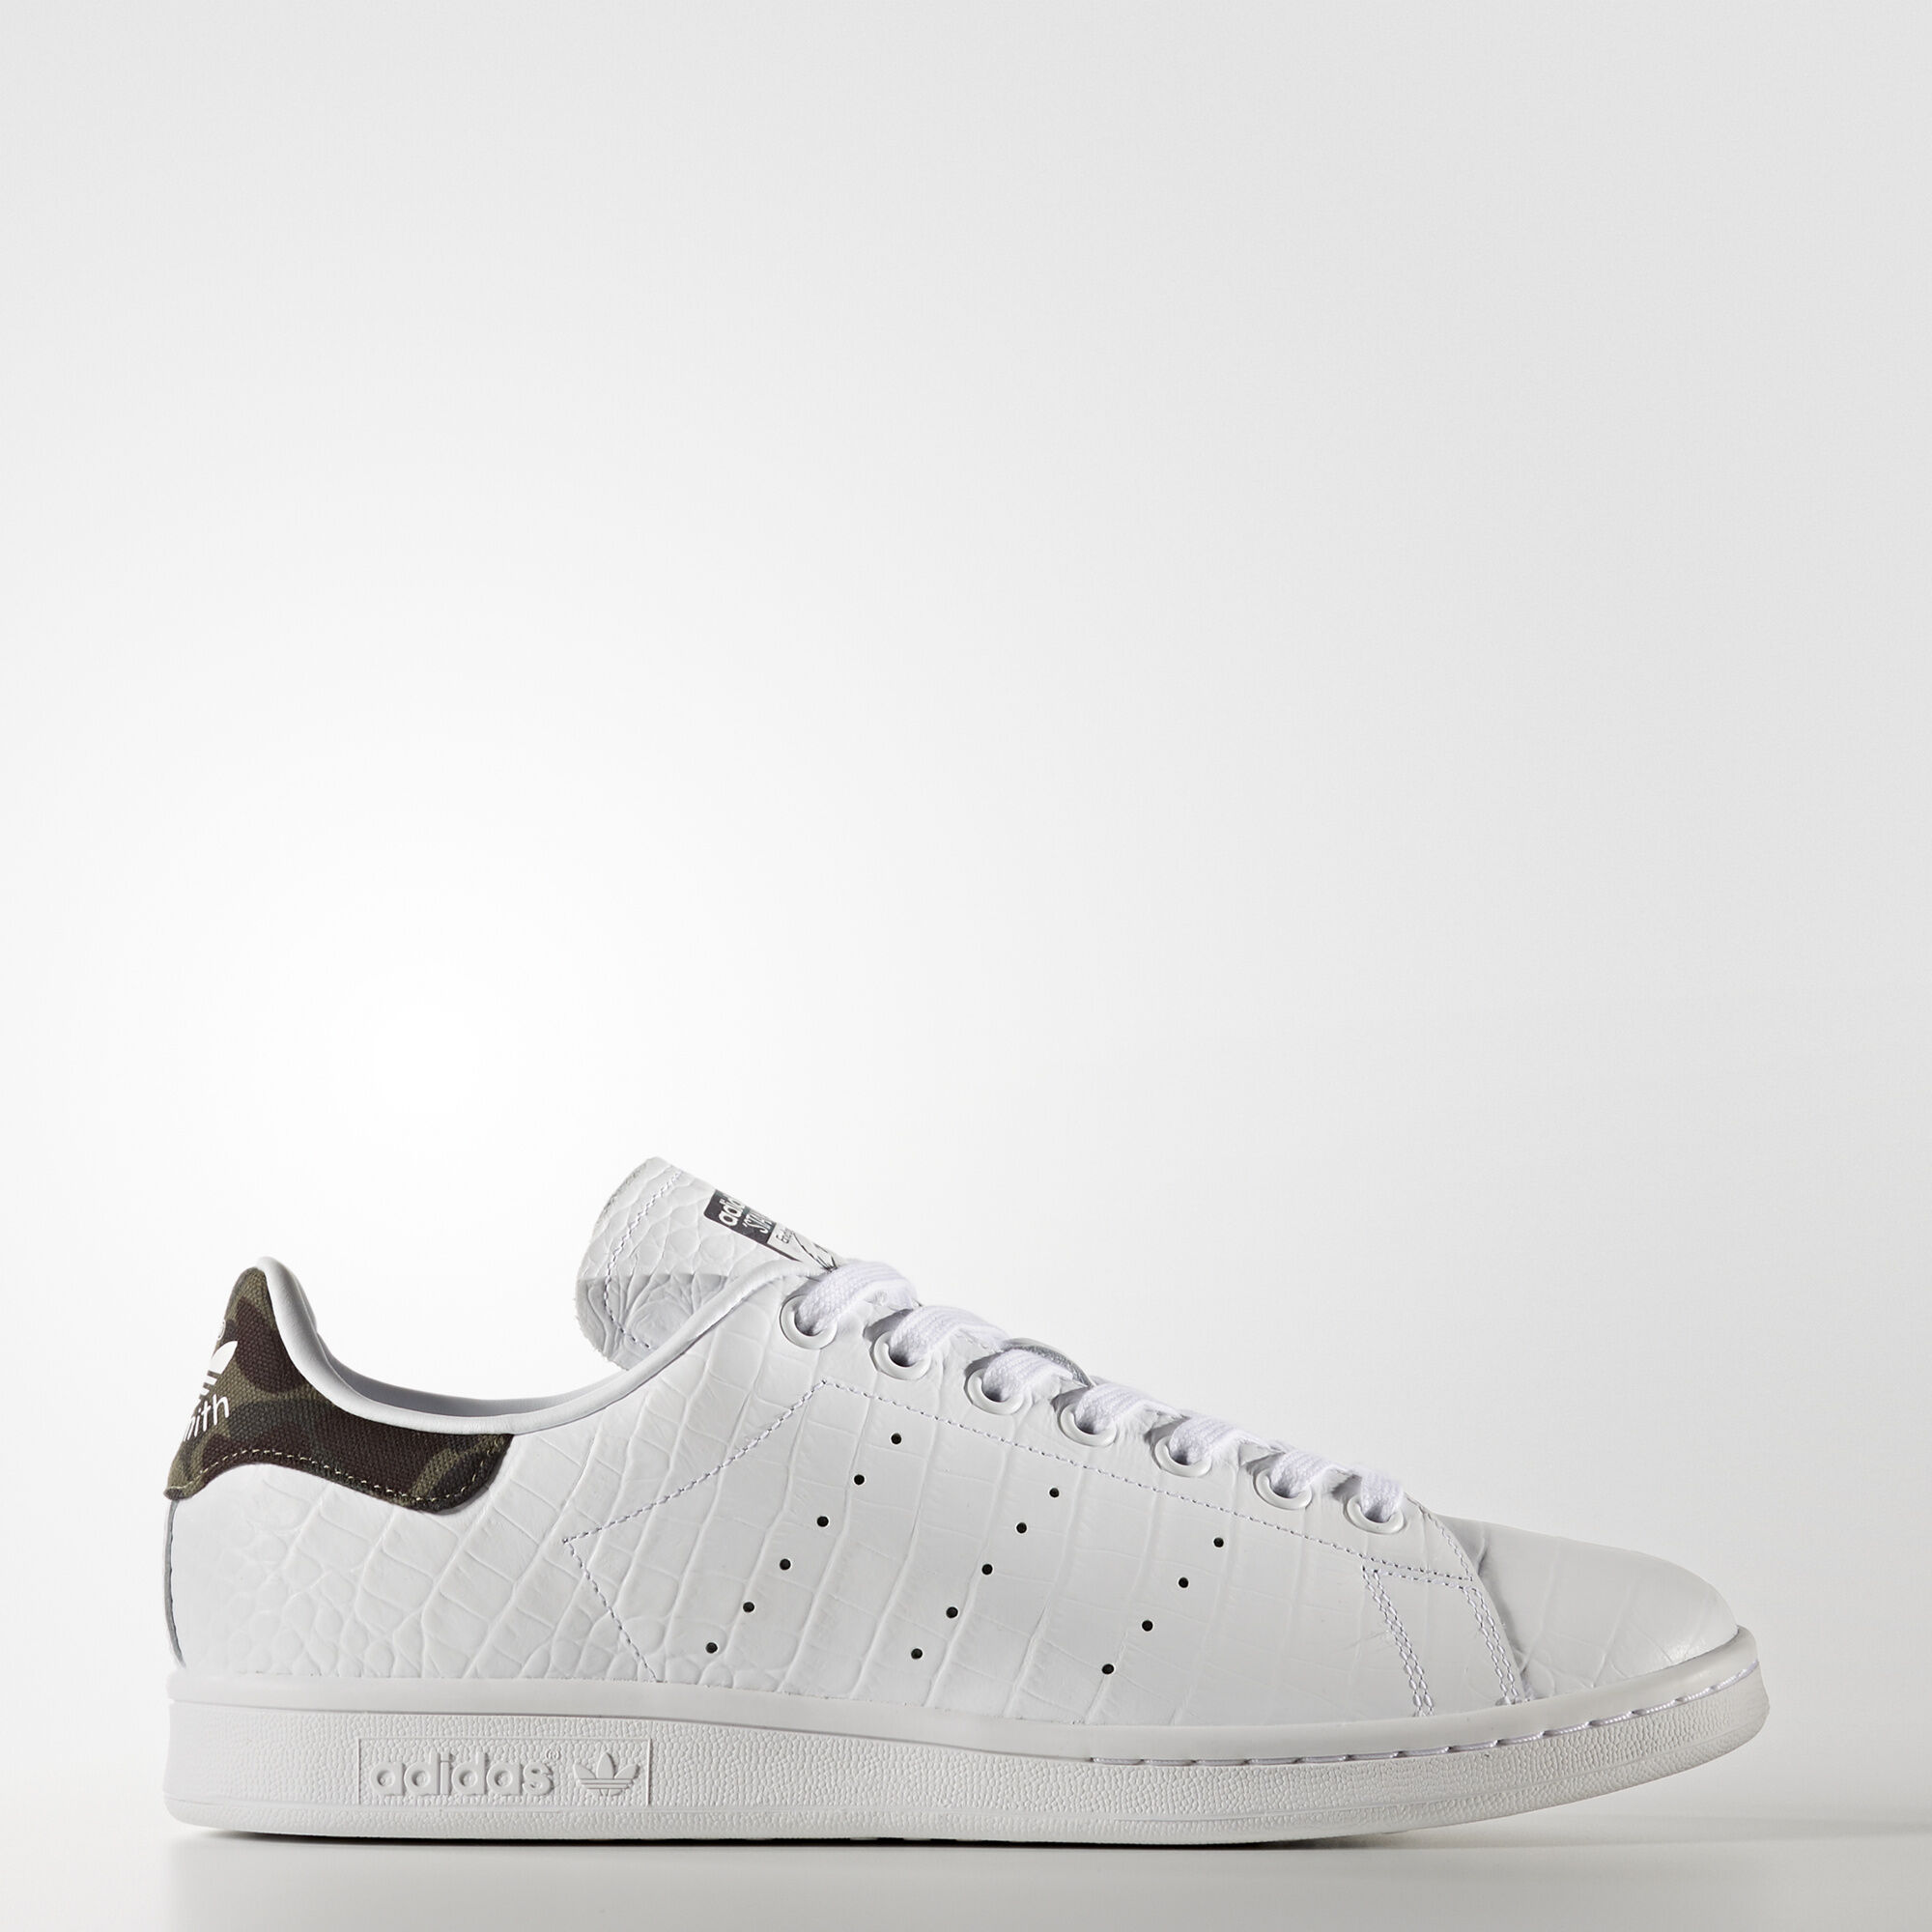 Adidas Neo White Edition